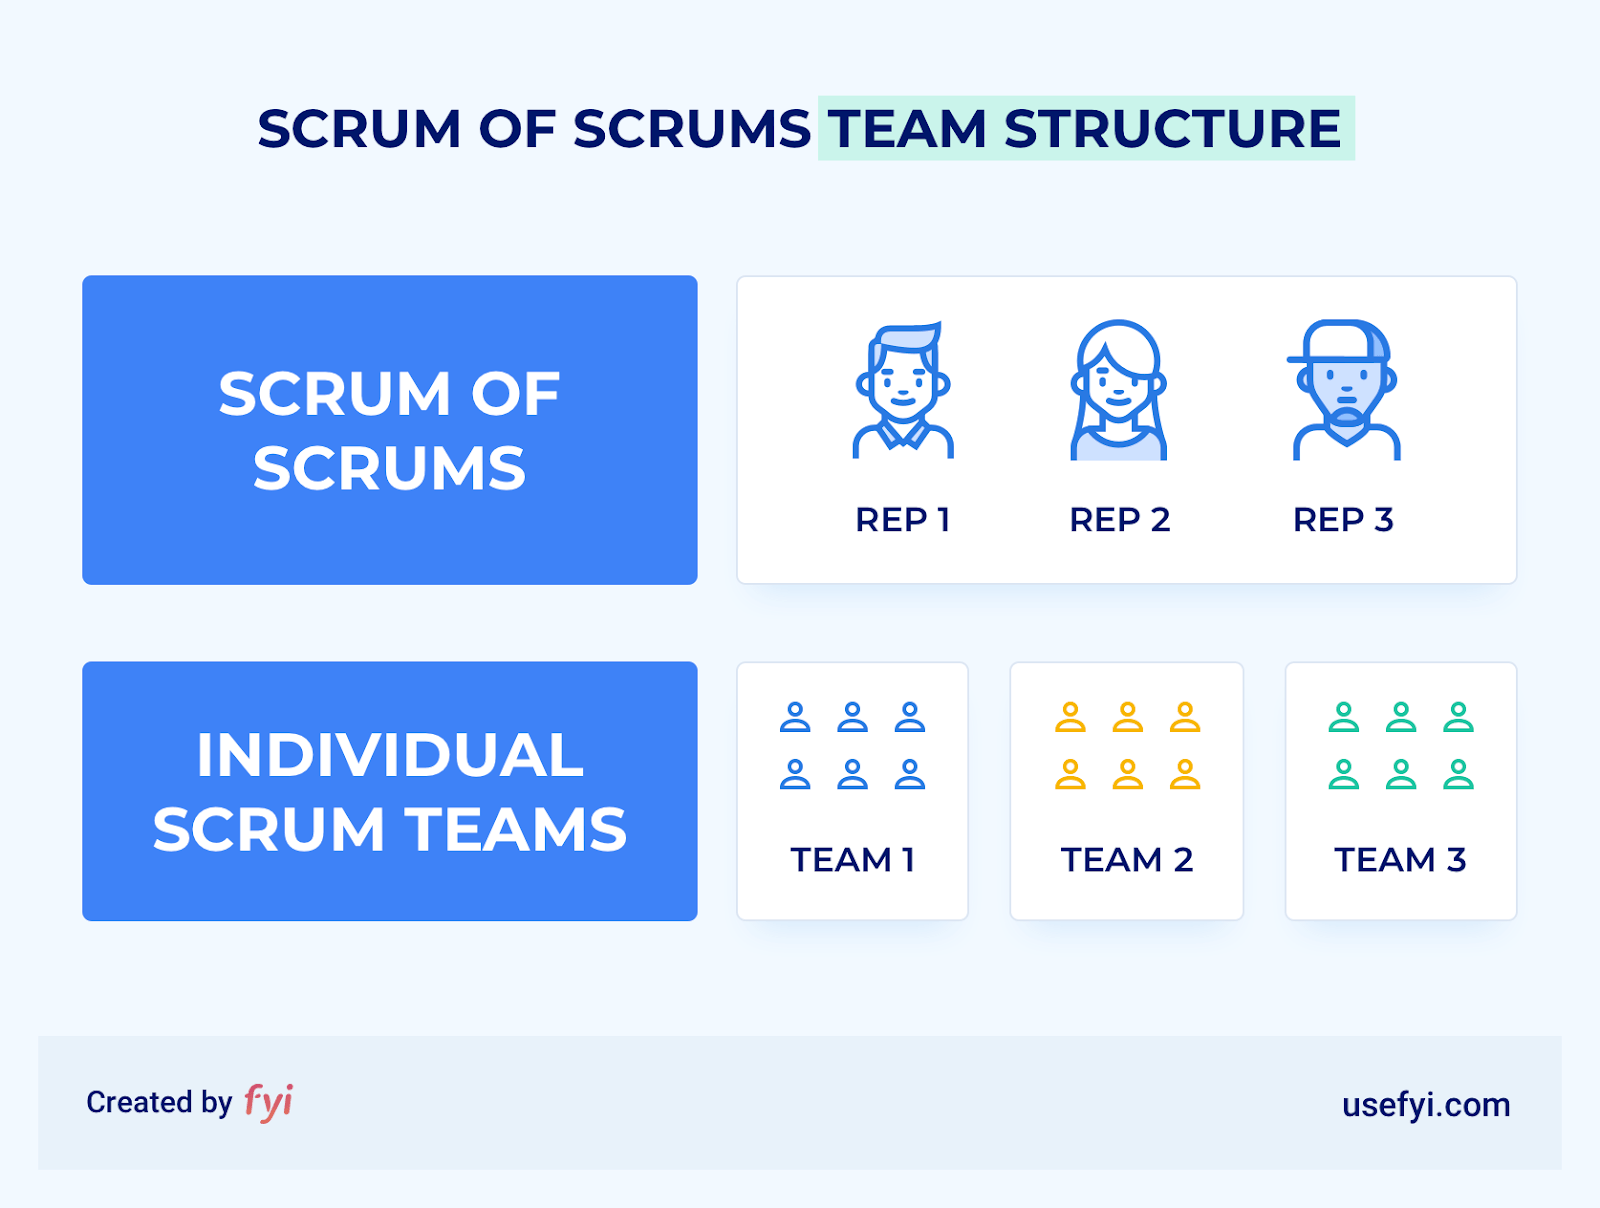 Scrum Of Scrums team structure